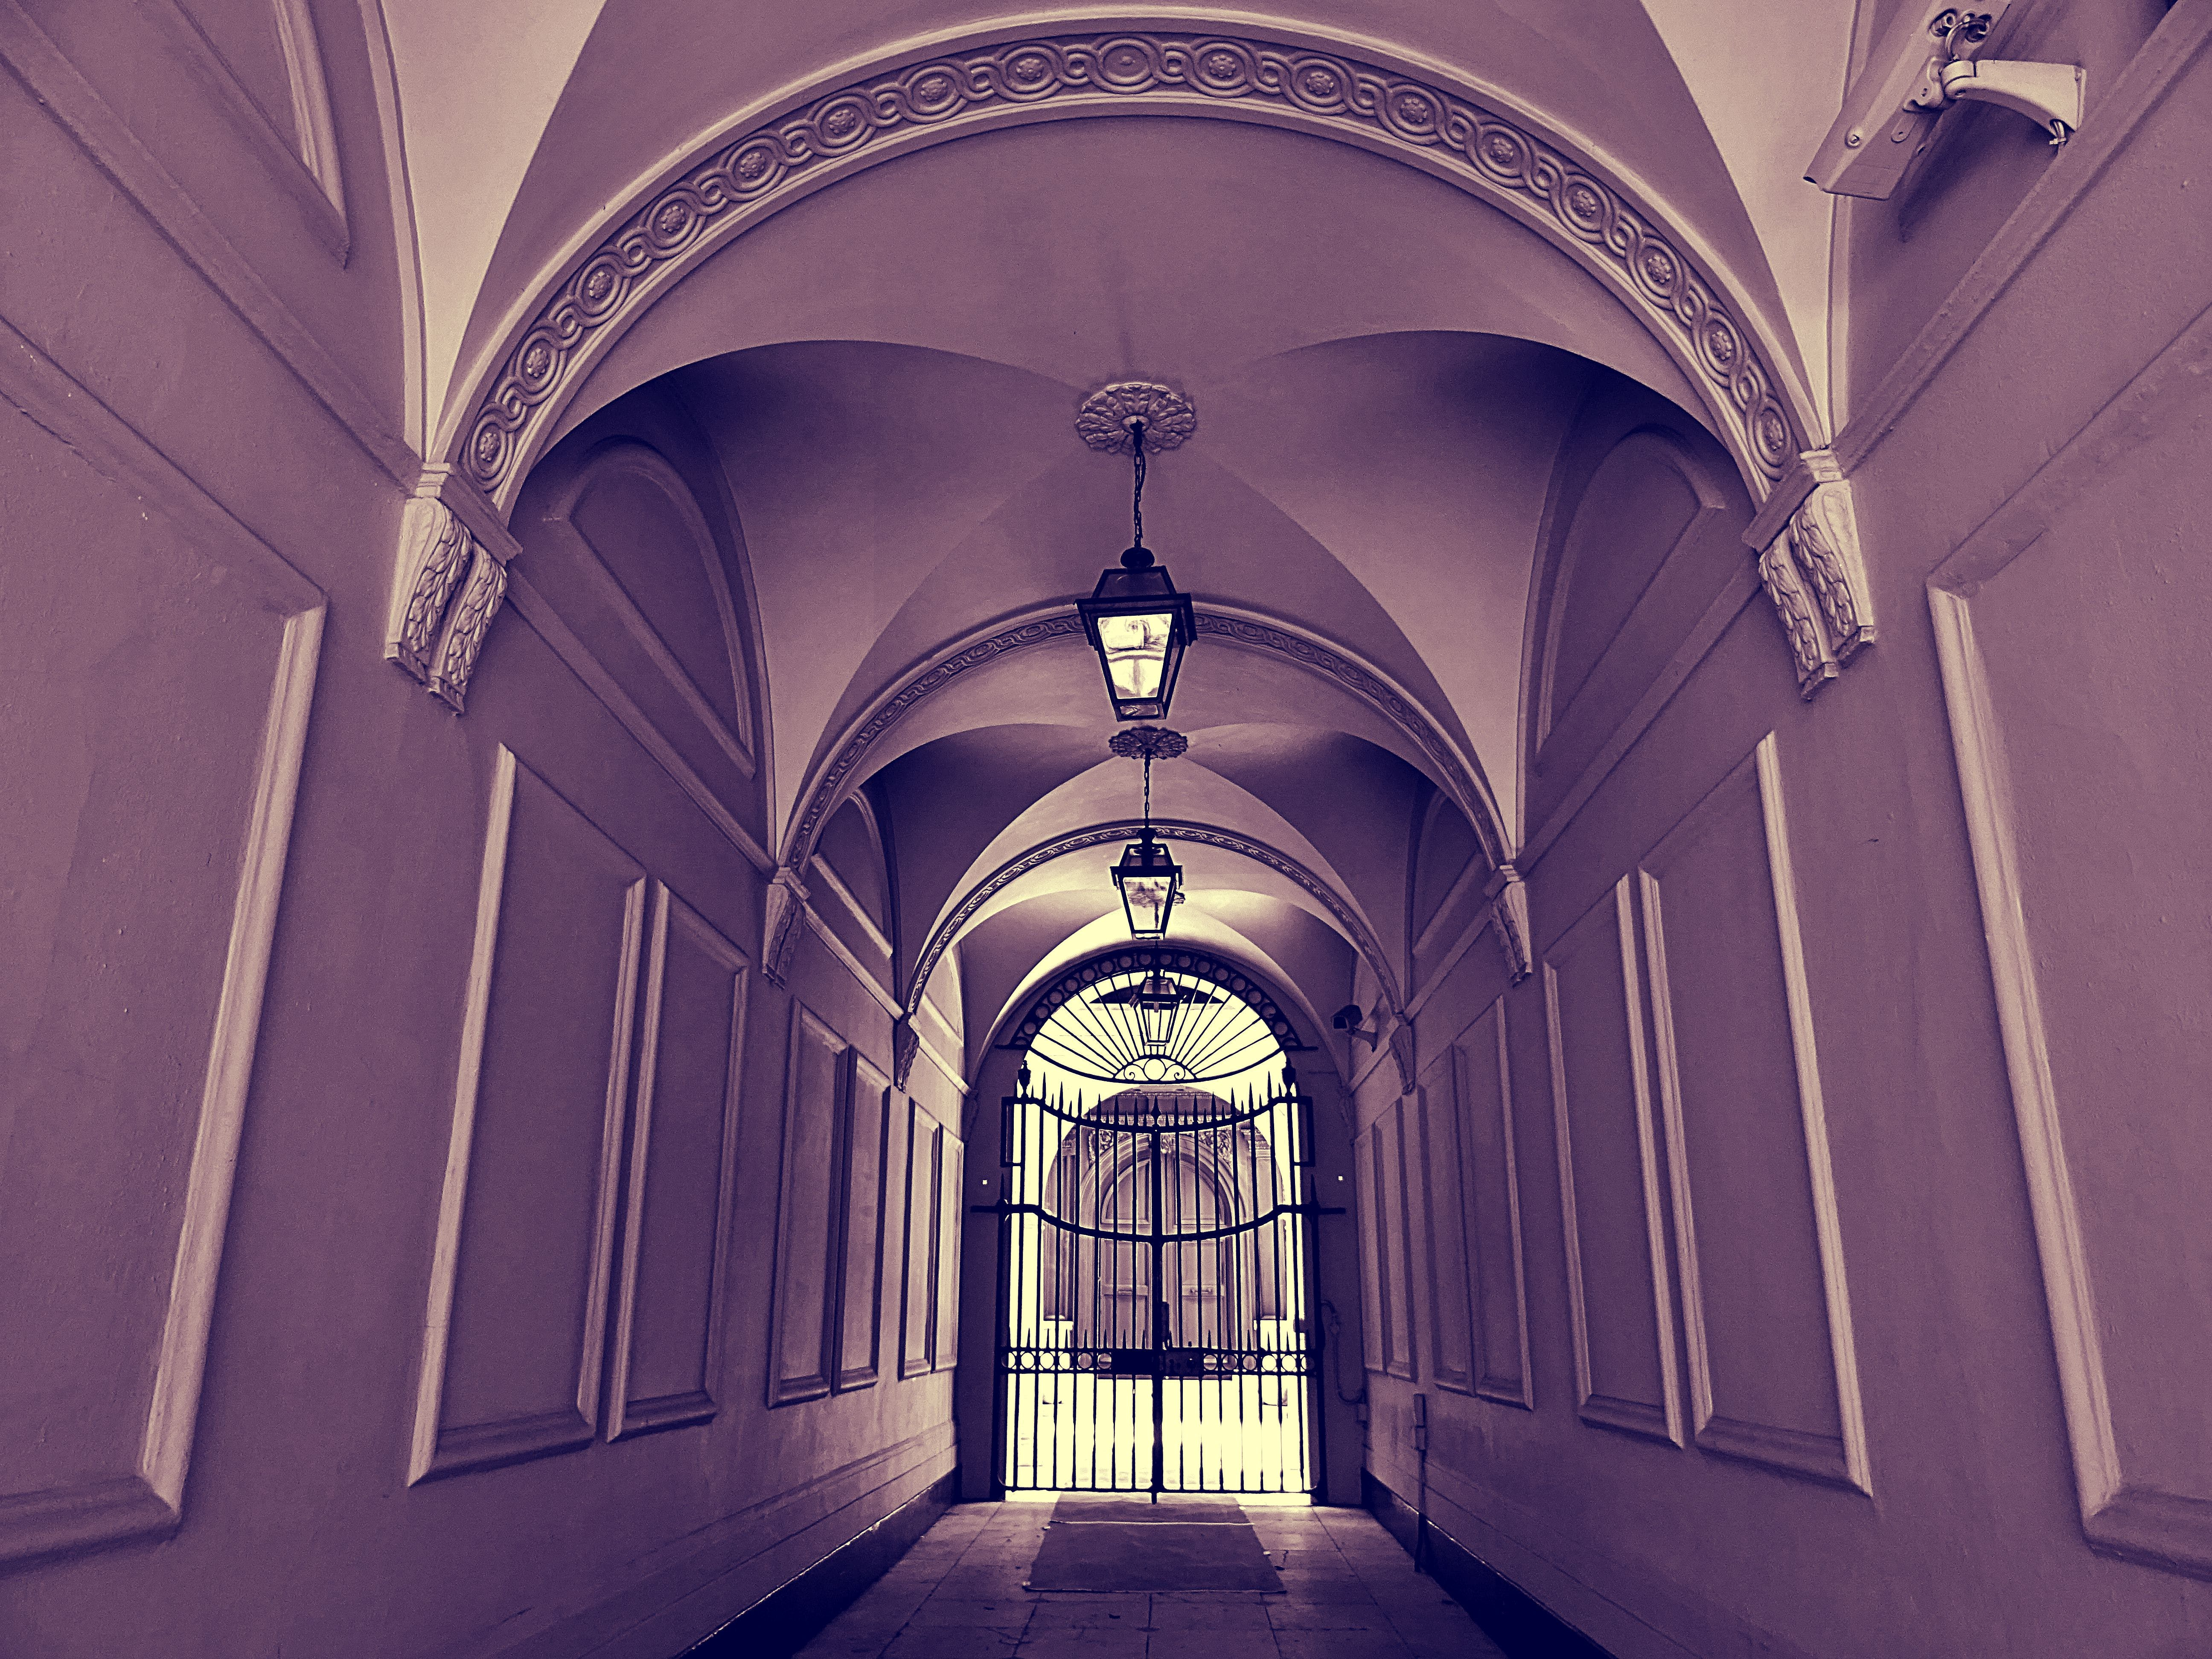 Empty Hallway and Closed Gate